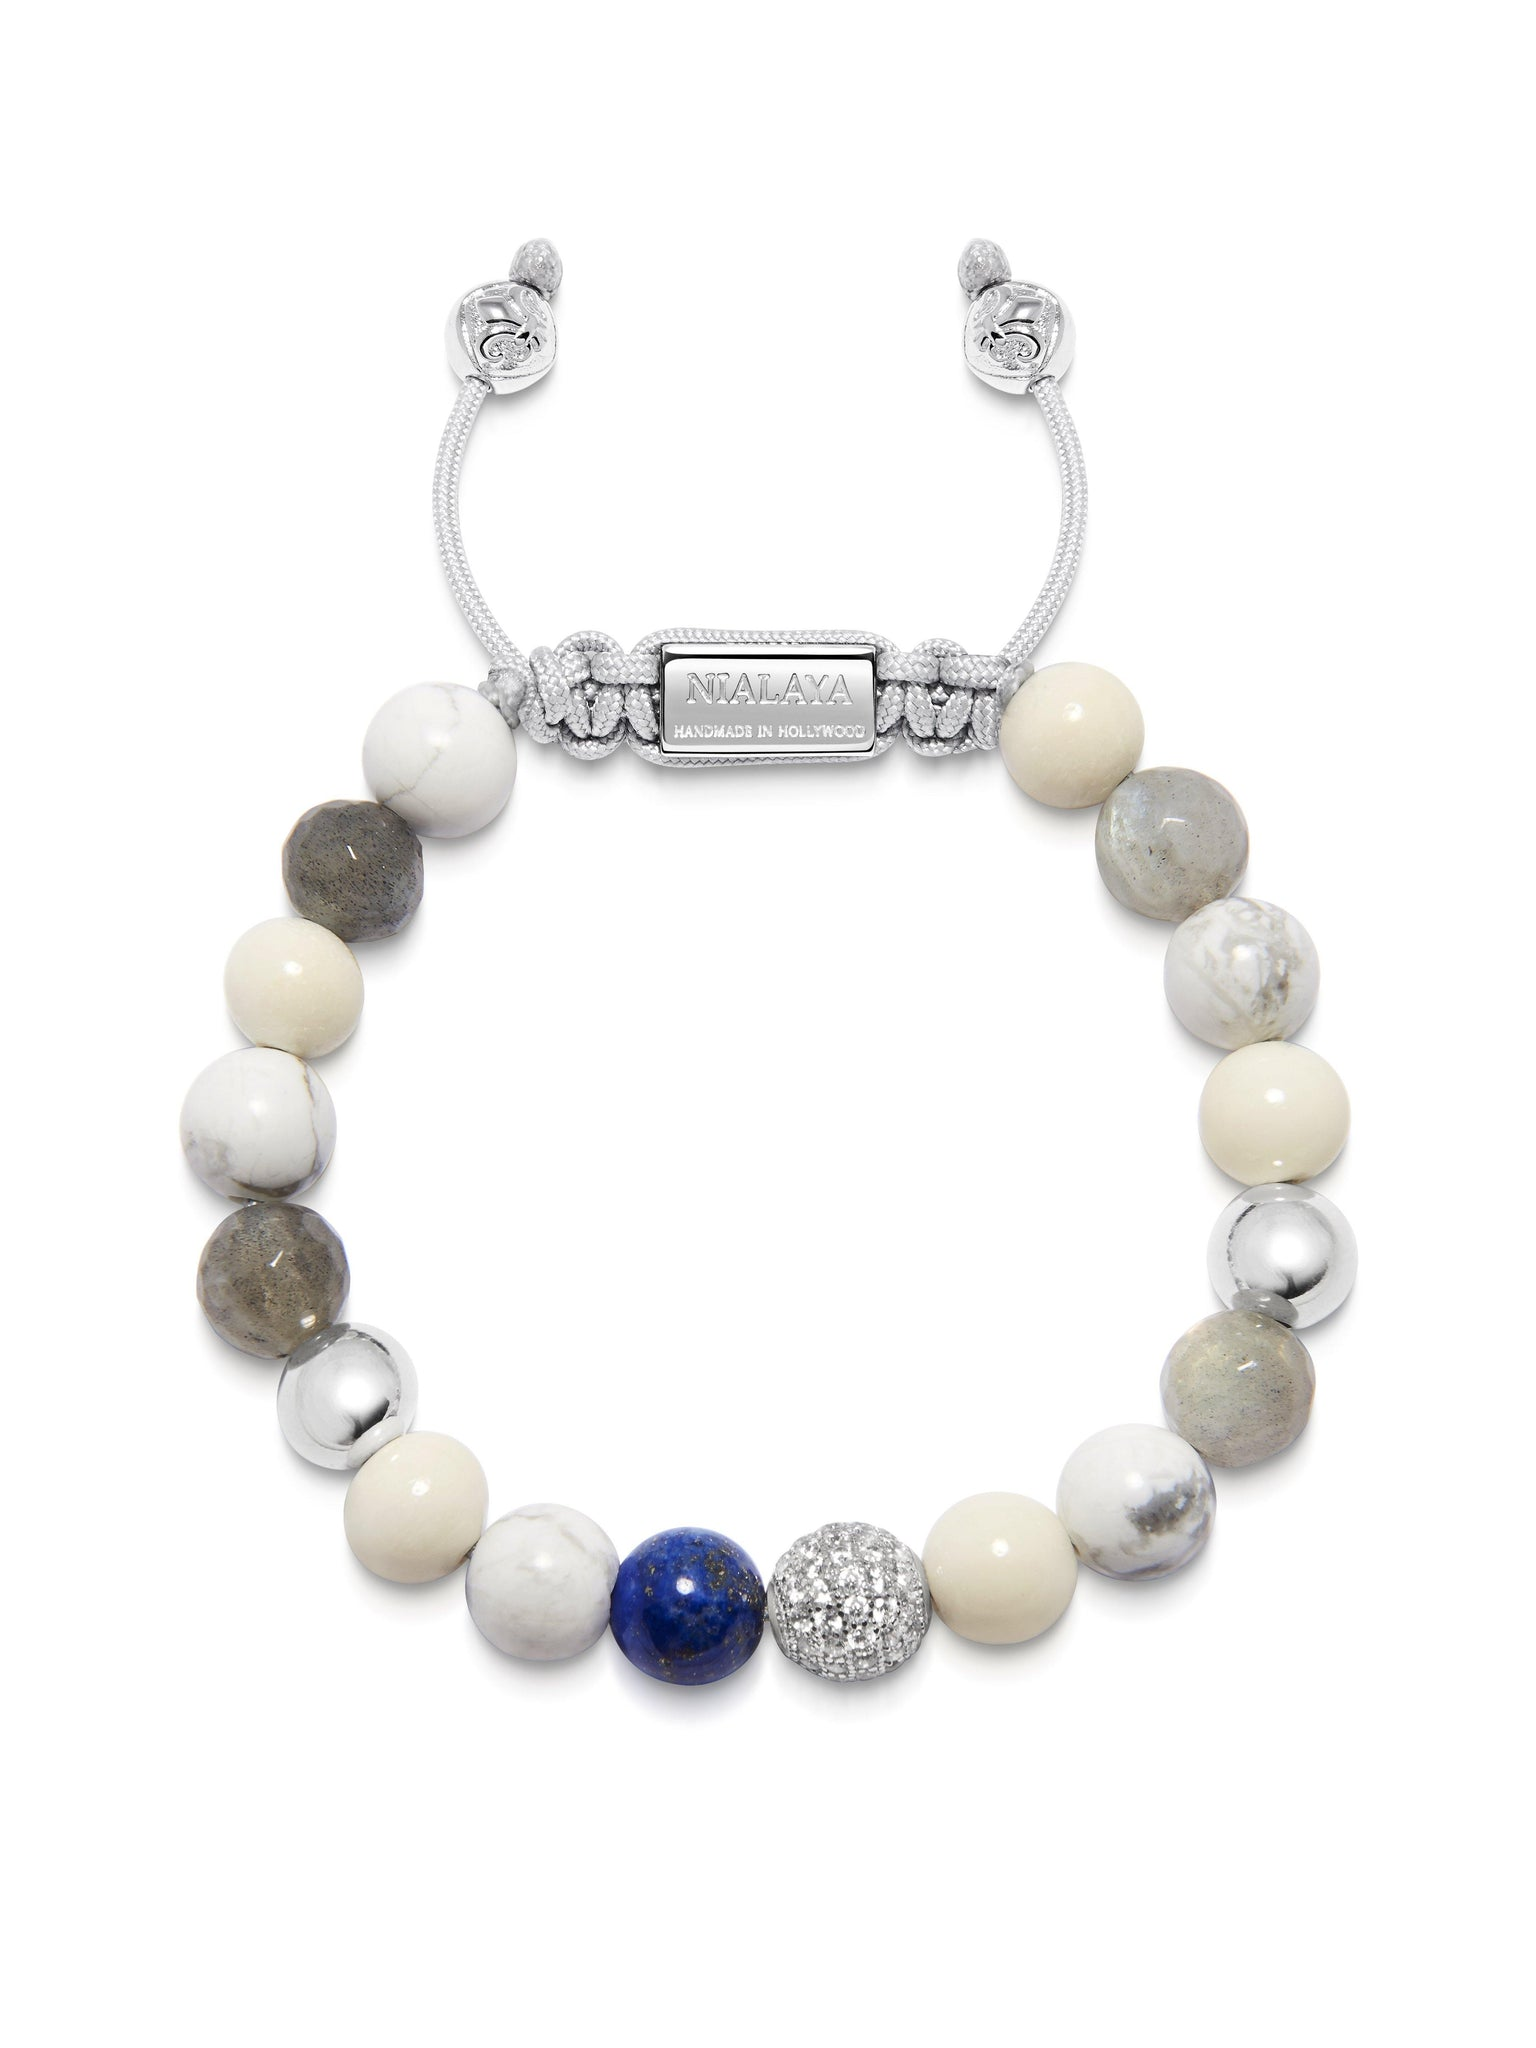 Women's Beaded Bracelet with Howlite, Labradorite, White Coral and Blue Lapis - Nialaya Jewelry